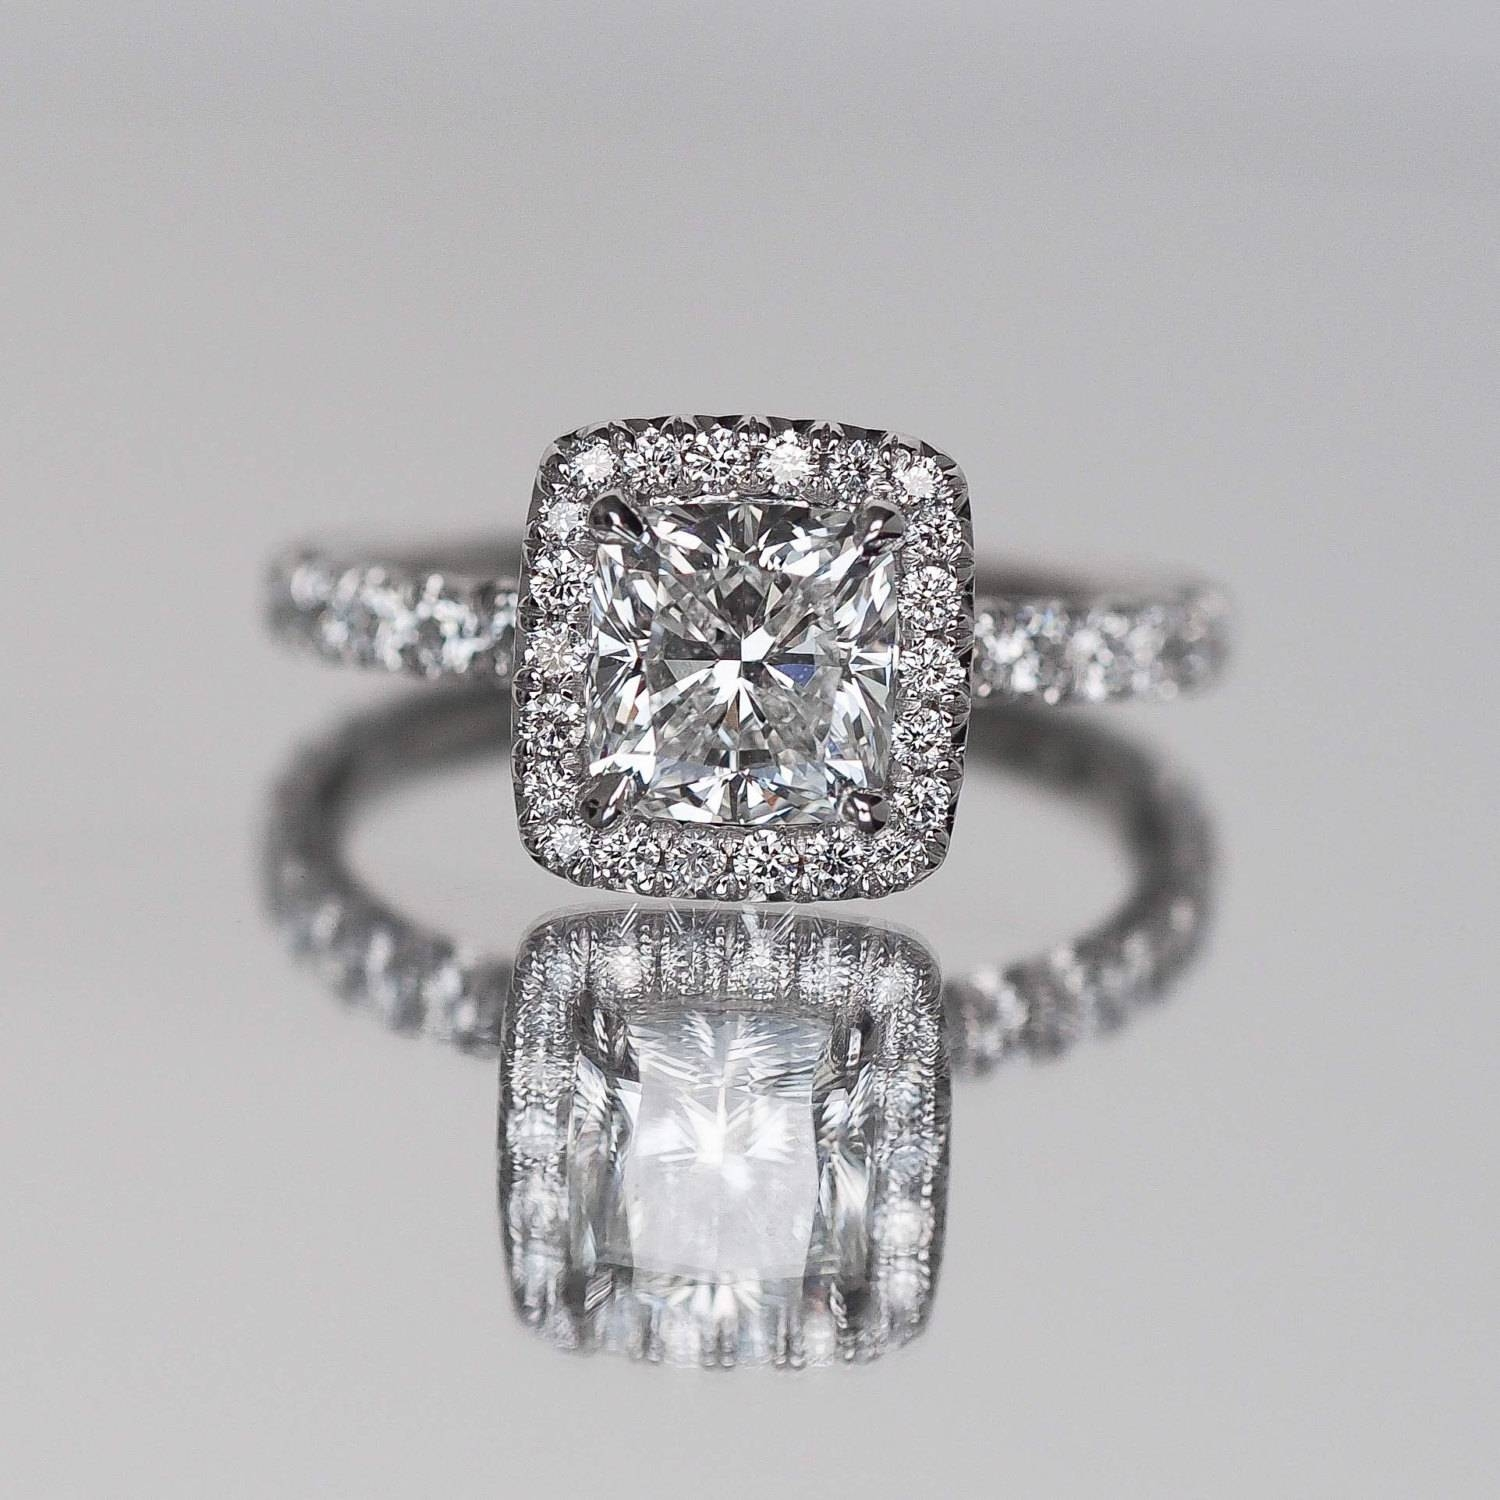 Cushion Cut Engagement Ring With Diamonds On Halo Facing Up Intended For Vvs Engagement Rings (Gallery 3 of 15)